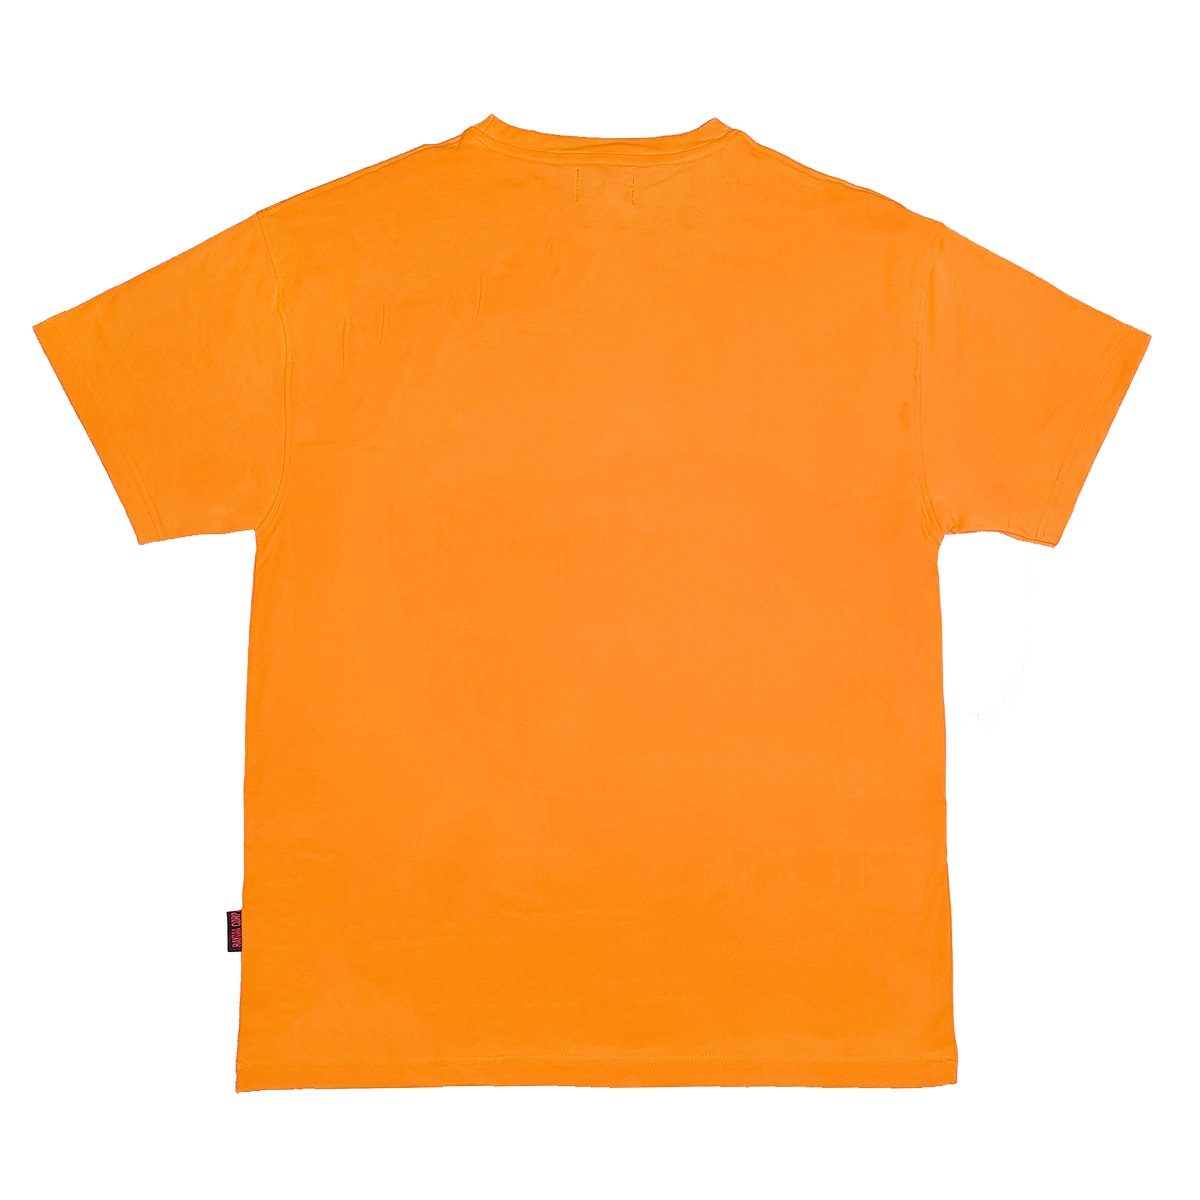 DSW TEE BASIC LOGO - ORANGE